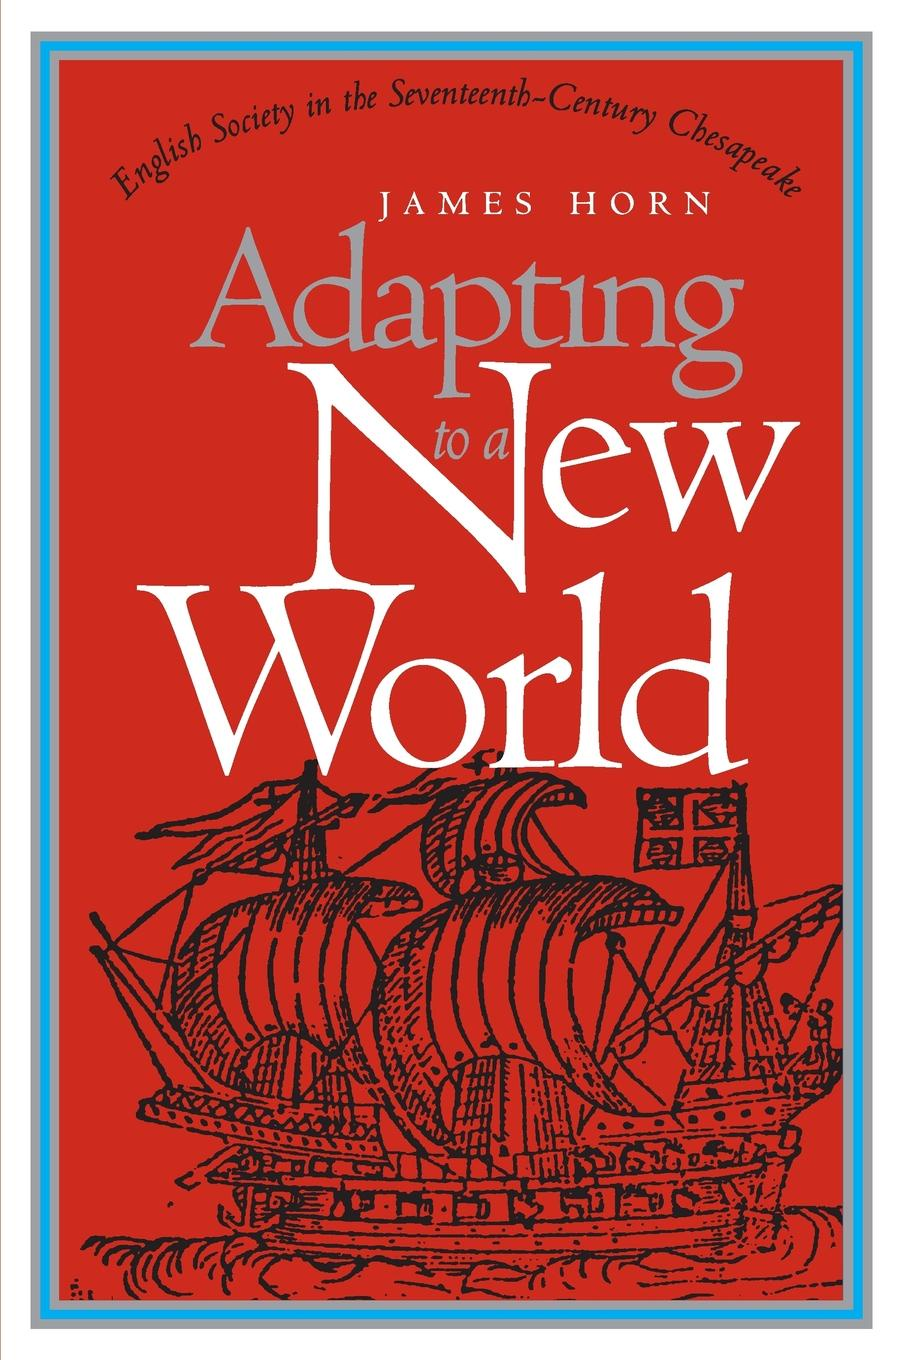 James Horn Adapting to a New World. English Society in the Seventeenth-Century Chesapeake richard albright death of the chesapeake a history of the military s role in polluting the bay